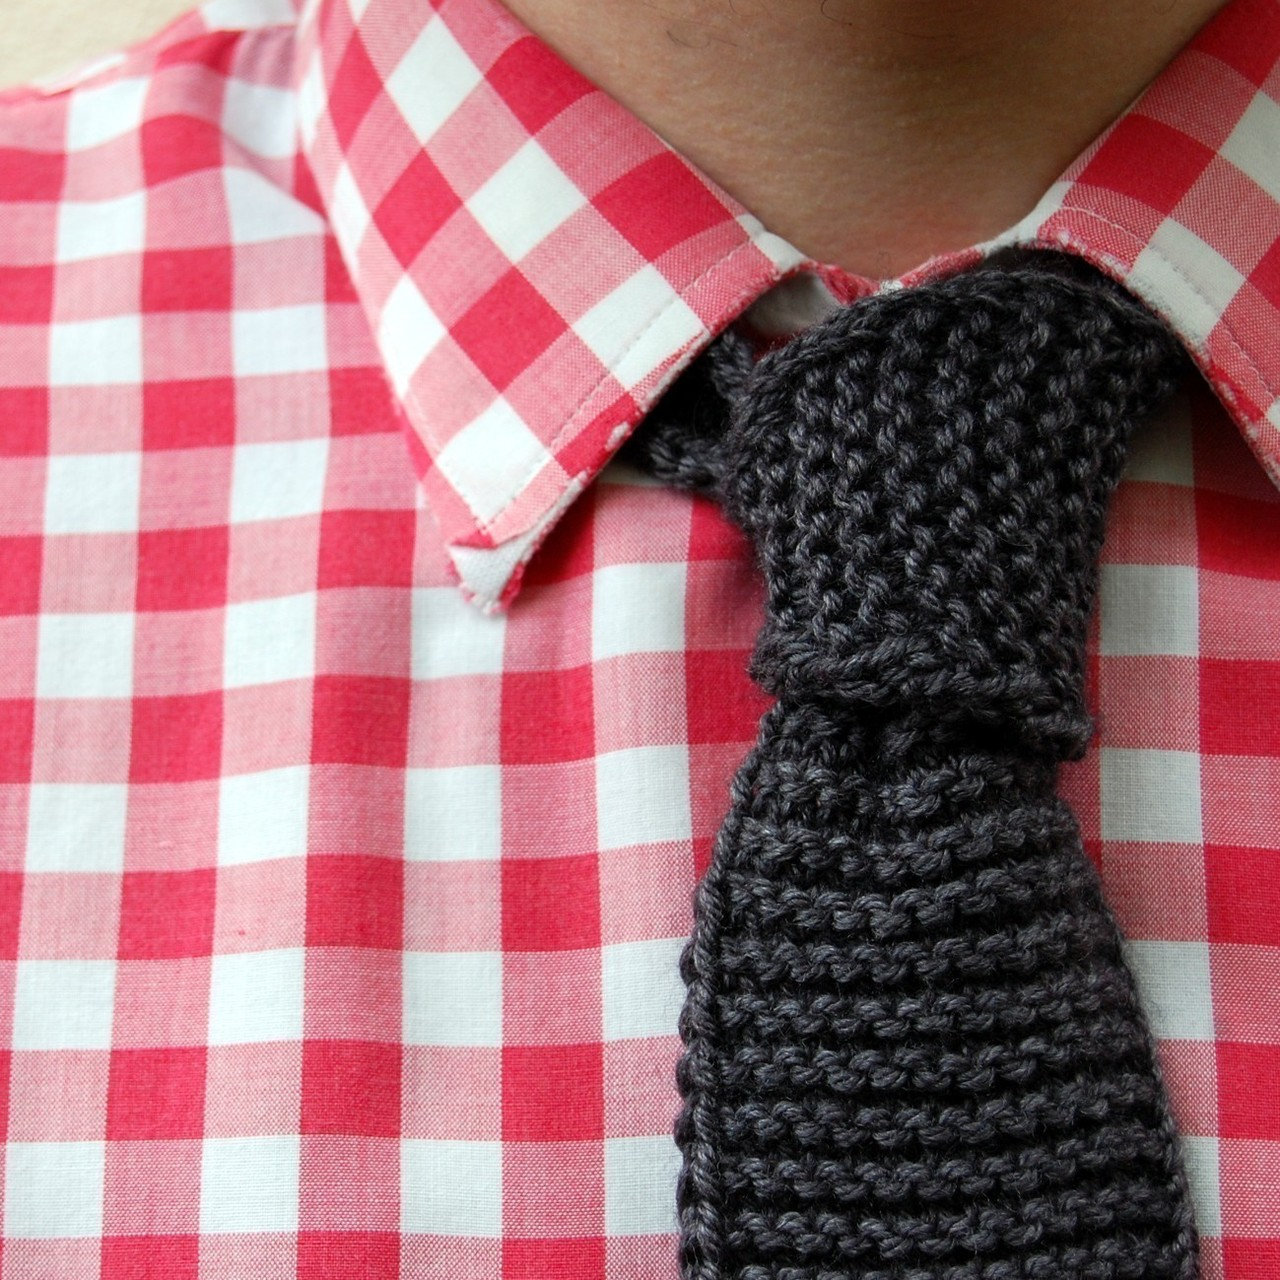 moderndistinction :     Stock up on knits. They just work! Its good to see them back in force.     tablecloth shirt and tie made by knitting        (via  cooperfrederickson )